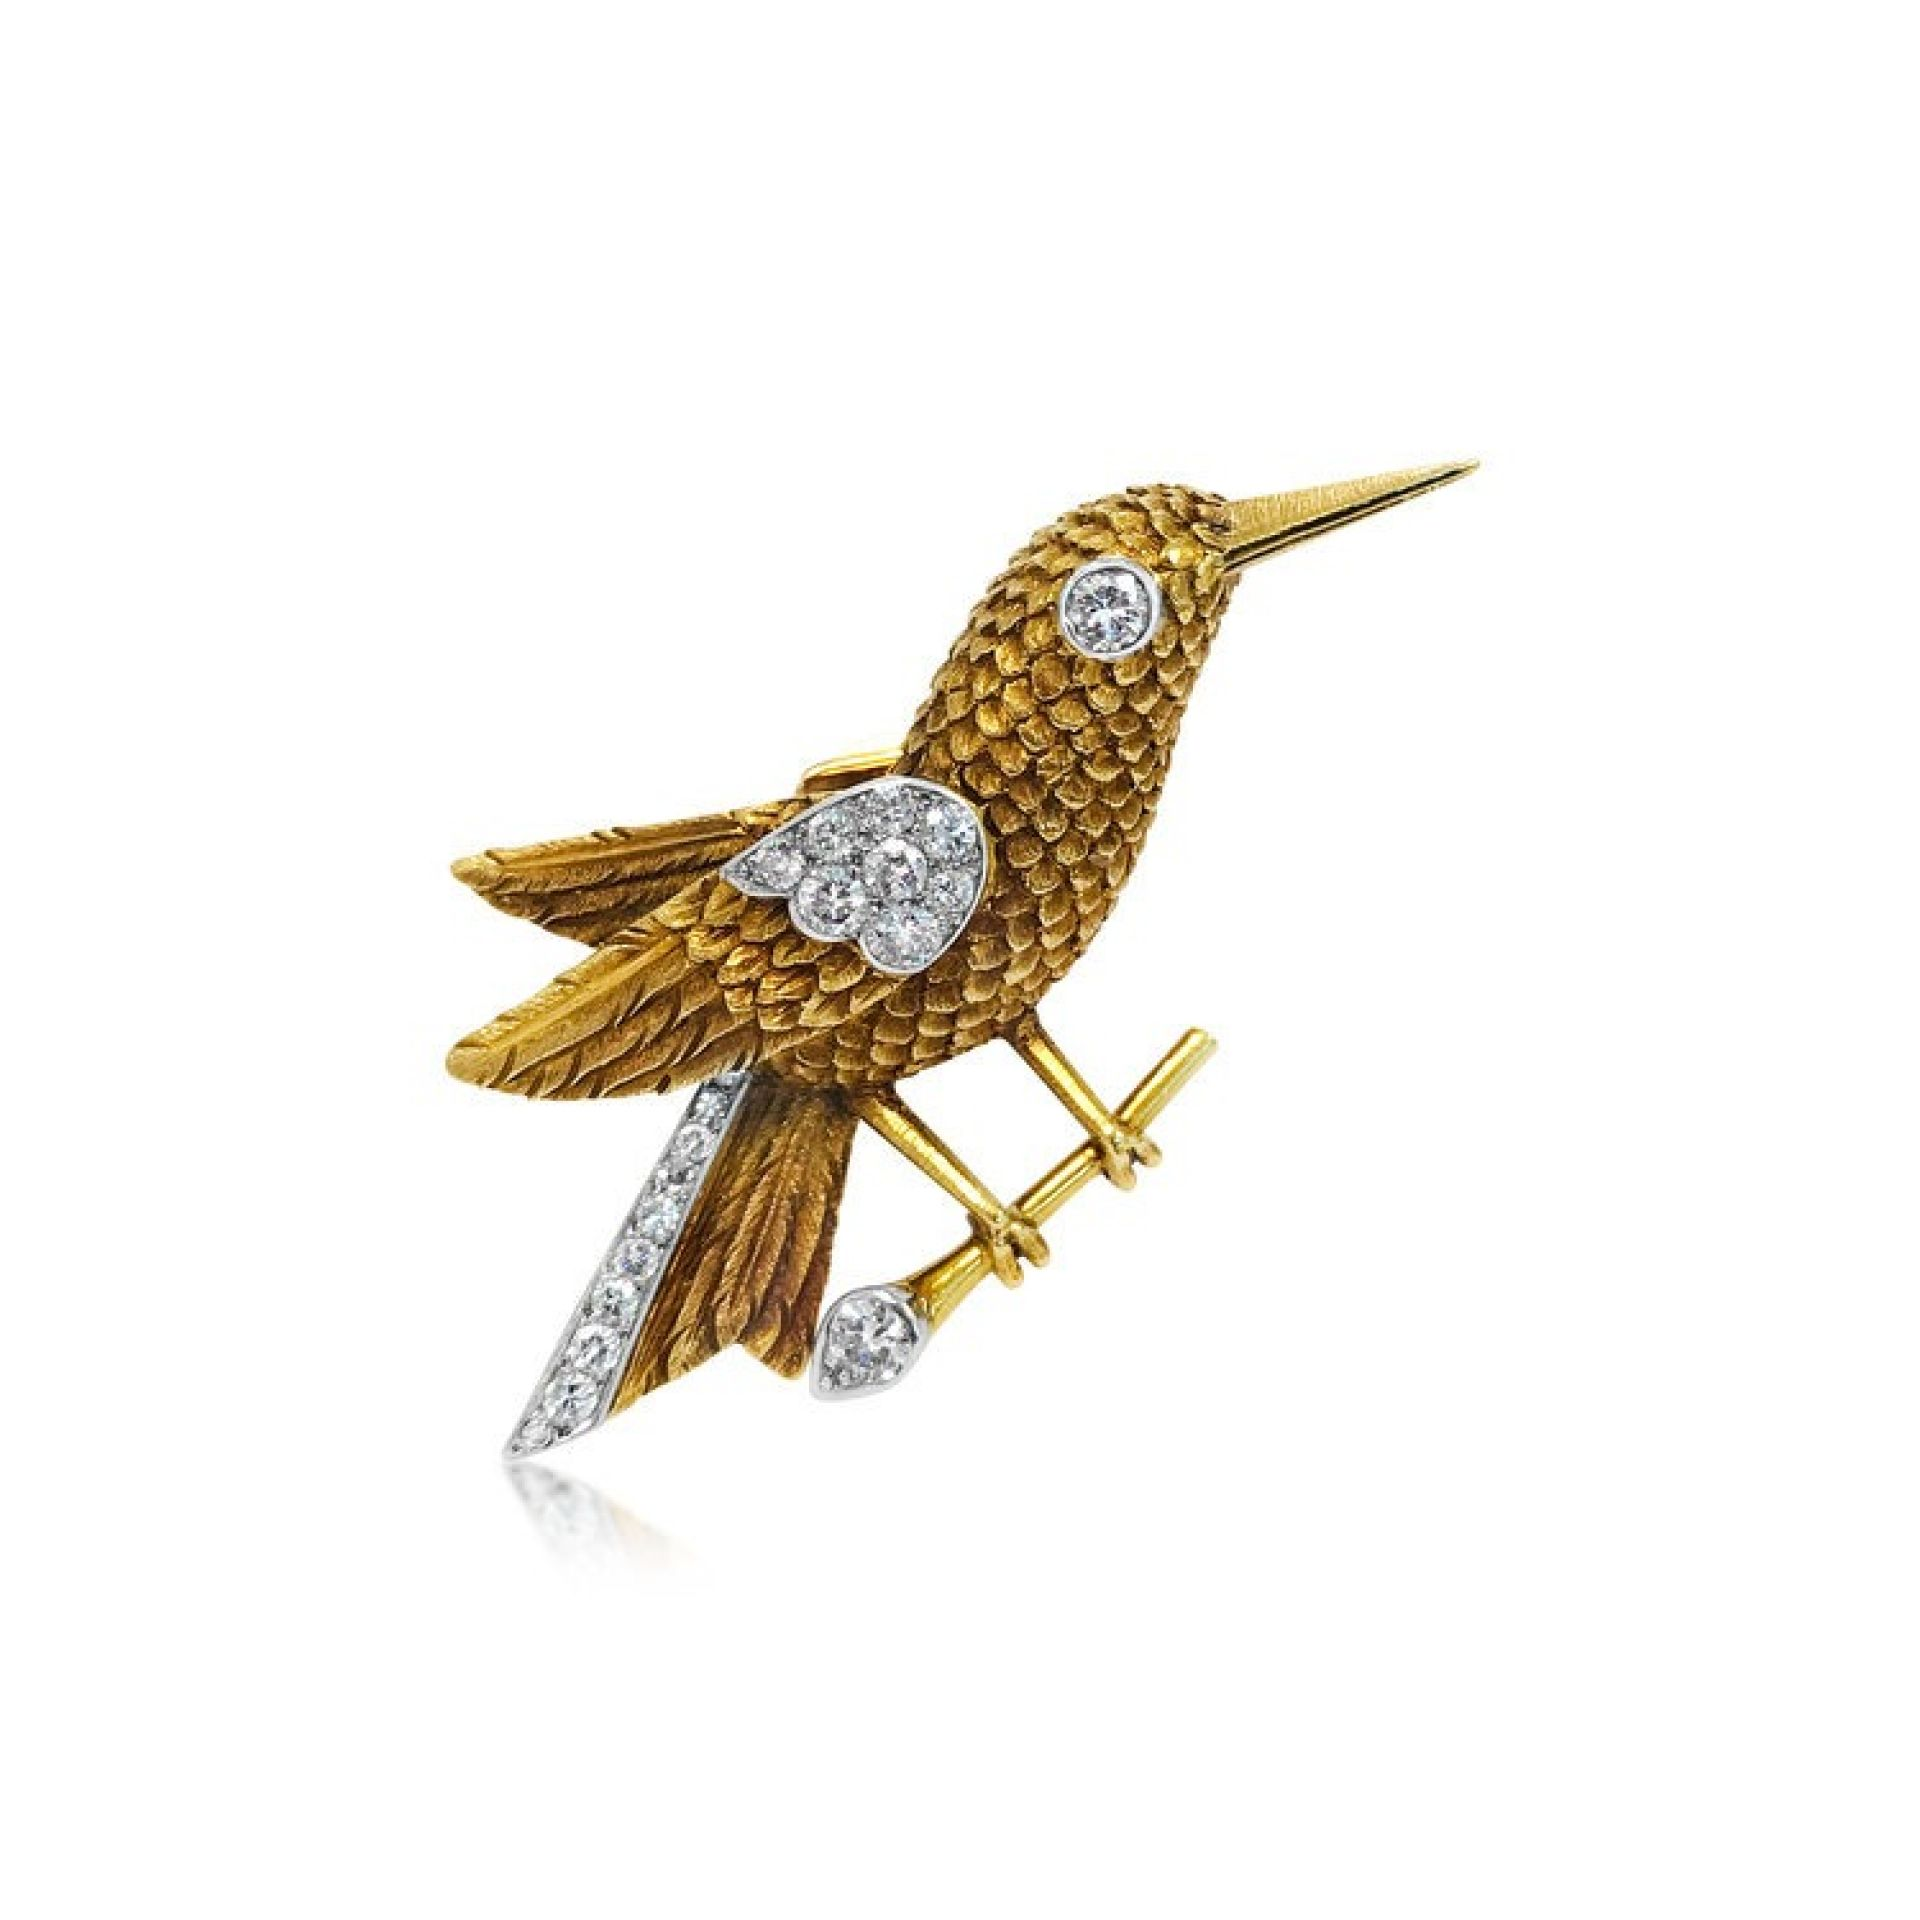 A DIAMOND AND YELLOW GOLD BIRD BROOCH